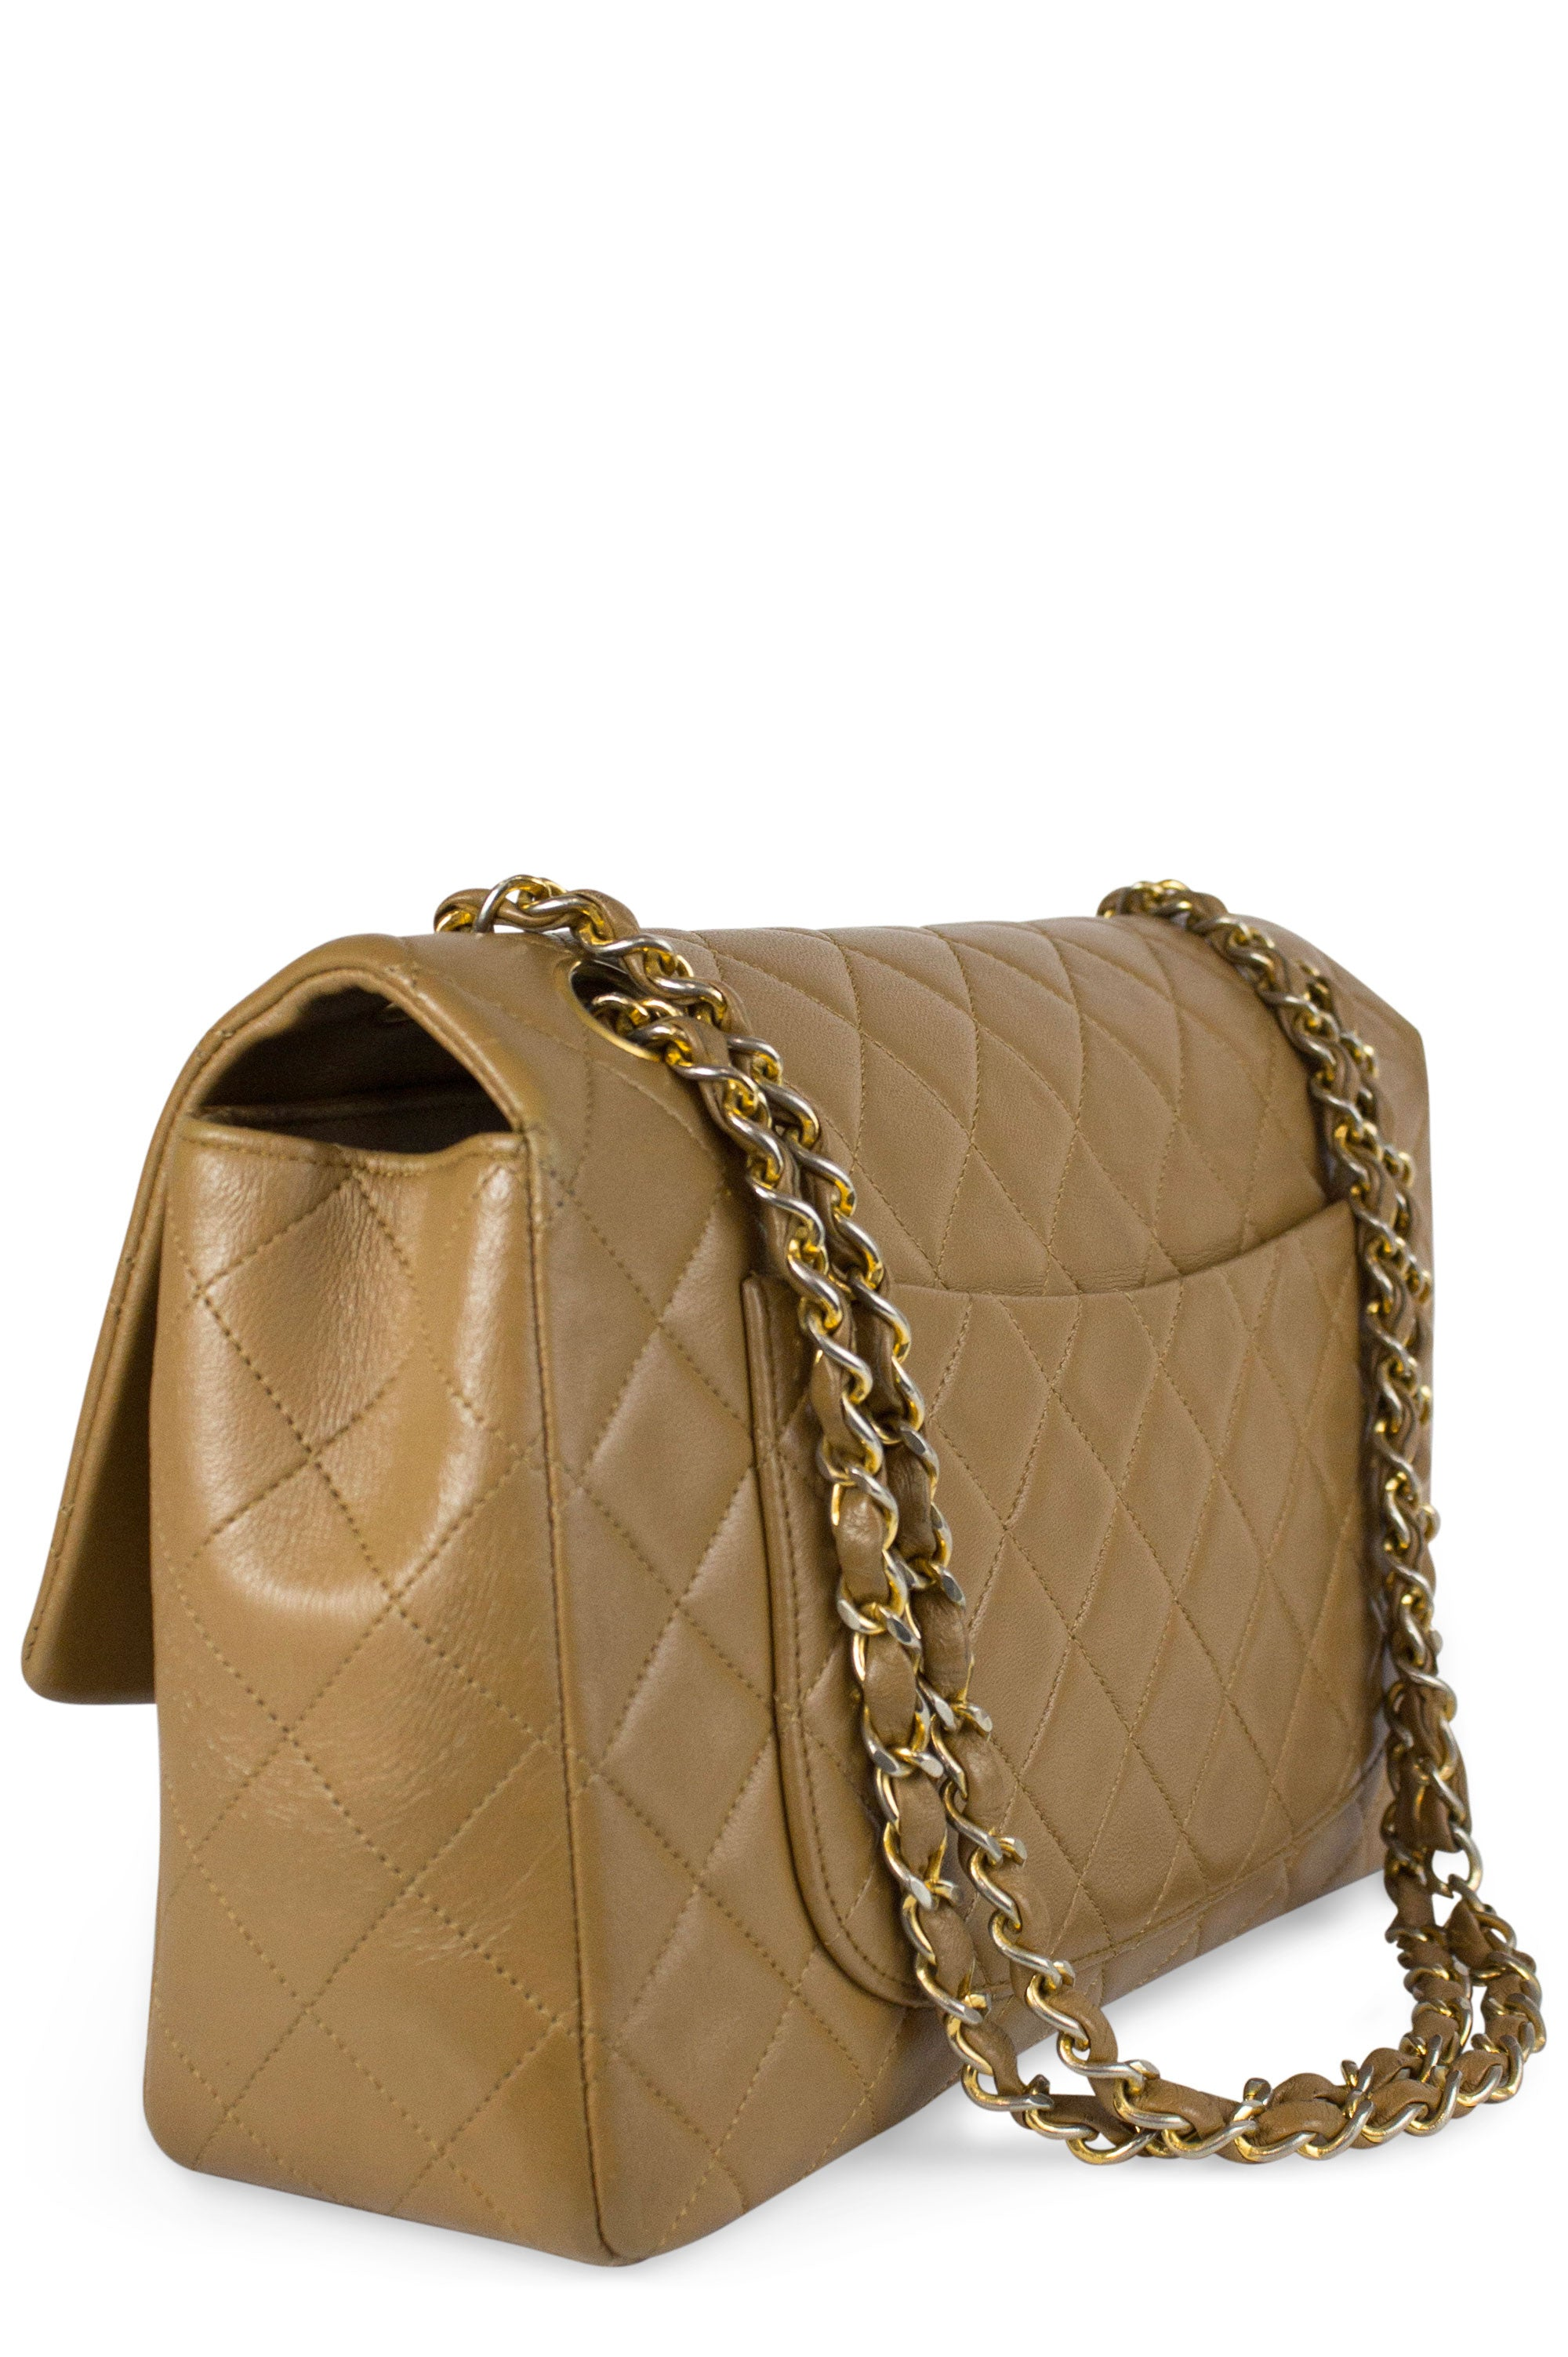 CHANEL Vintage One Flap Bag & Pochette